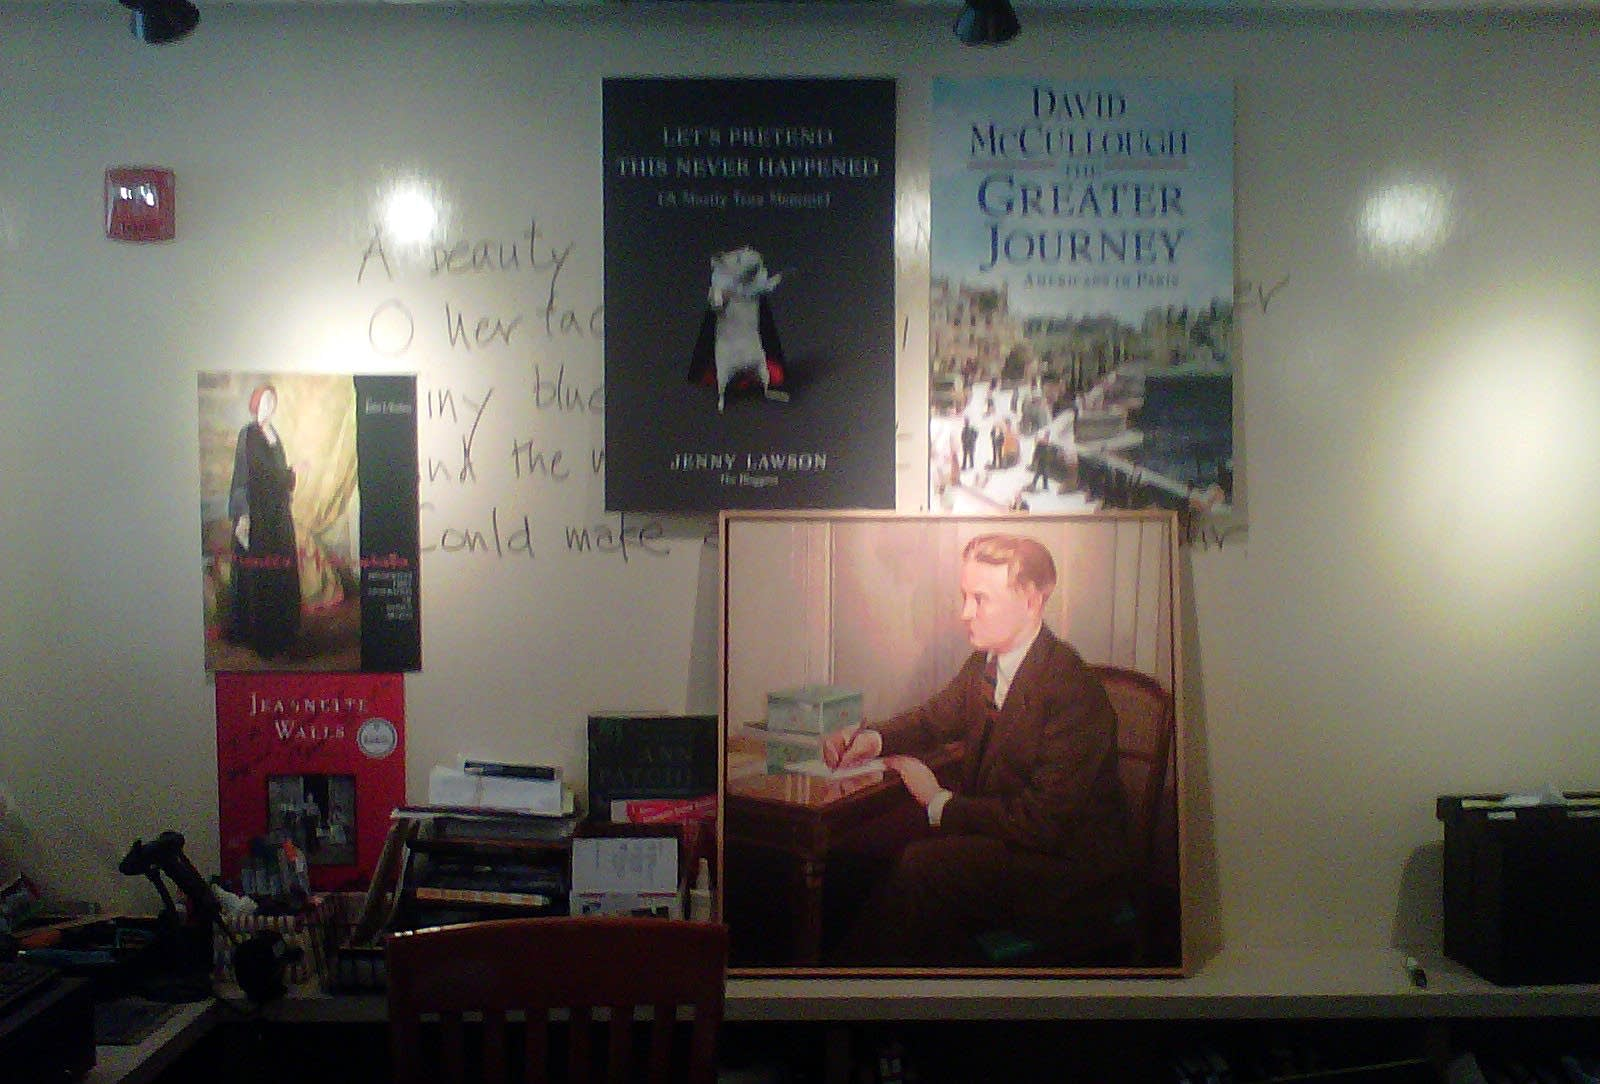 Employees at Keillor's bookstore covered up a limerick he wrote.